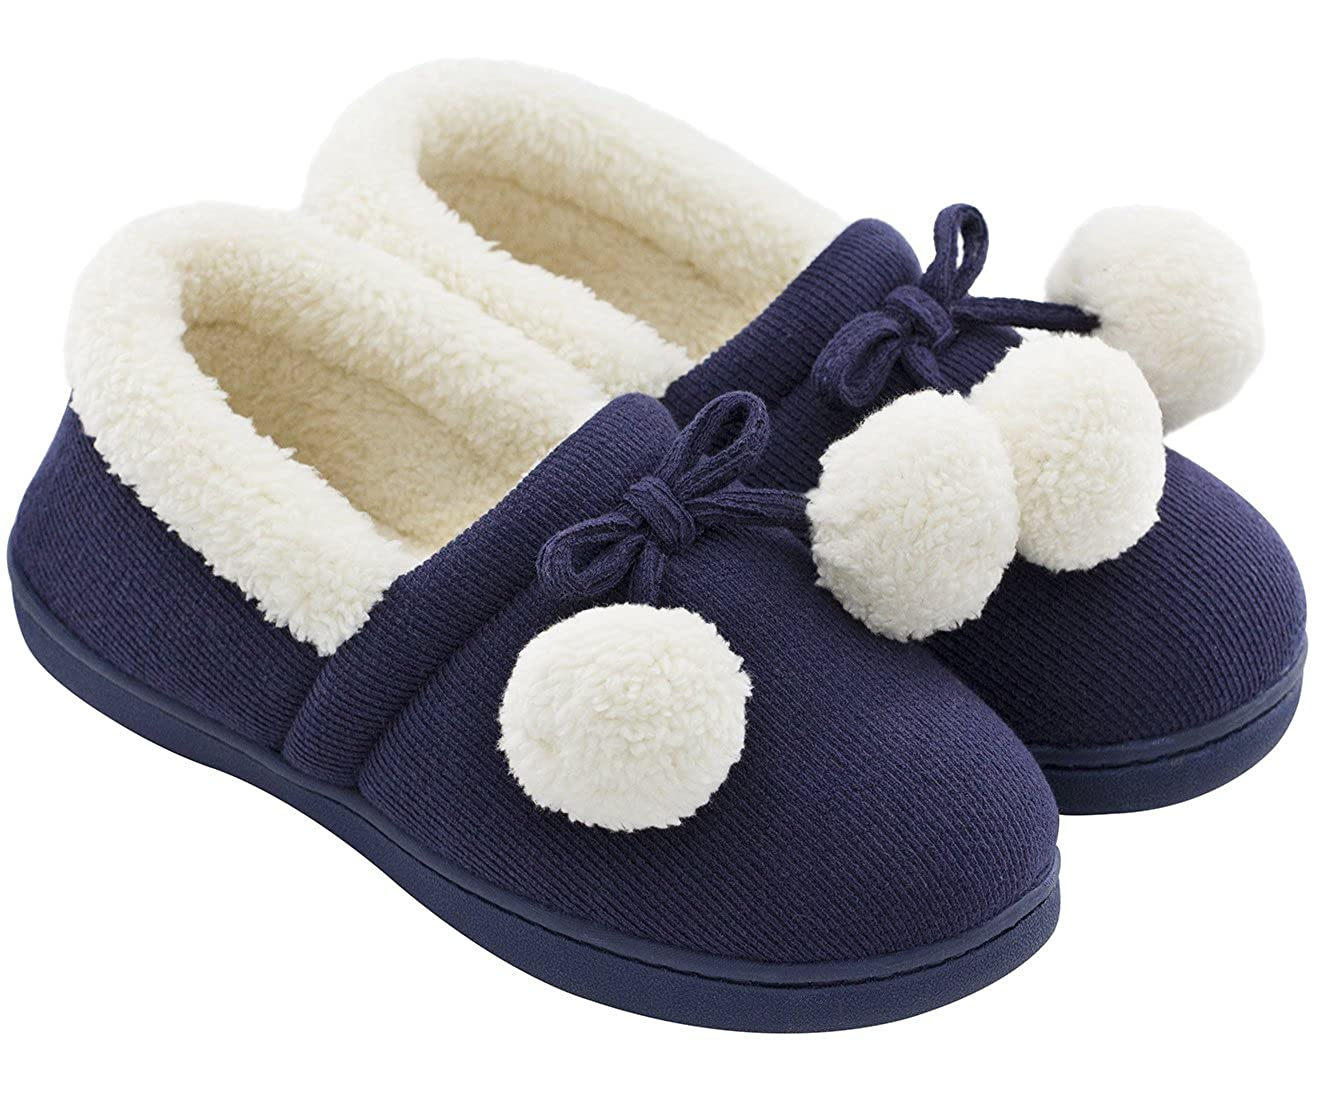 Women's Cozy Cute Fuzzy Knit Cotton Memory Foam House Shoes Slippers for Girls Teens with Pom Pom Decor Indoor Outdoor